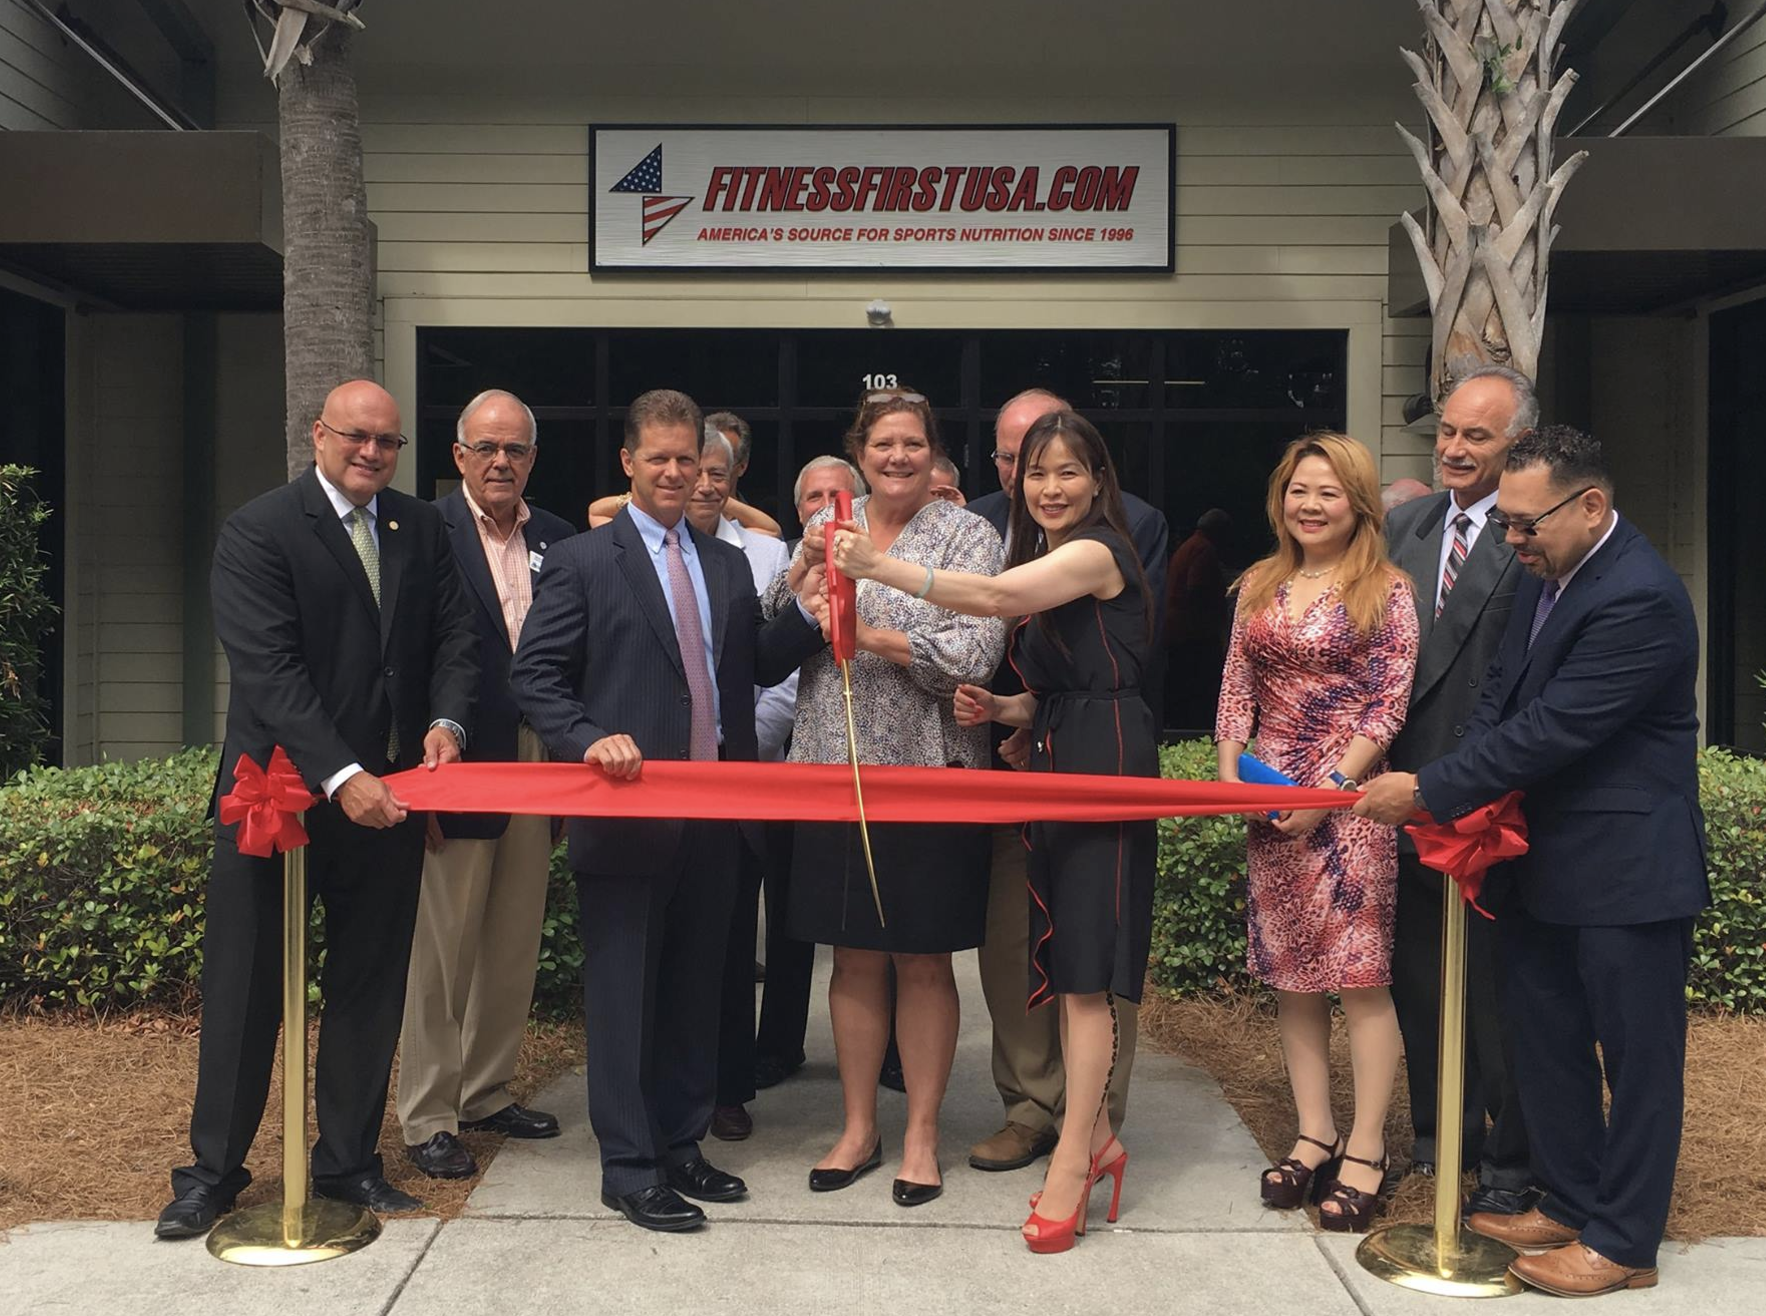 Mt. Pleasant, SC Mayor Linda Page, Town Council Member Mark Smith and others help welcome Fitness First USA to town in a ribbon cutting ceremony held 6/1/17